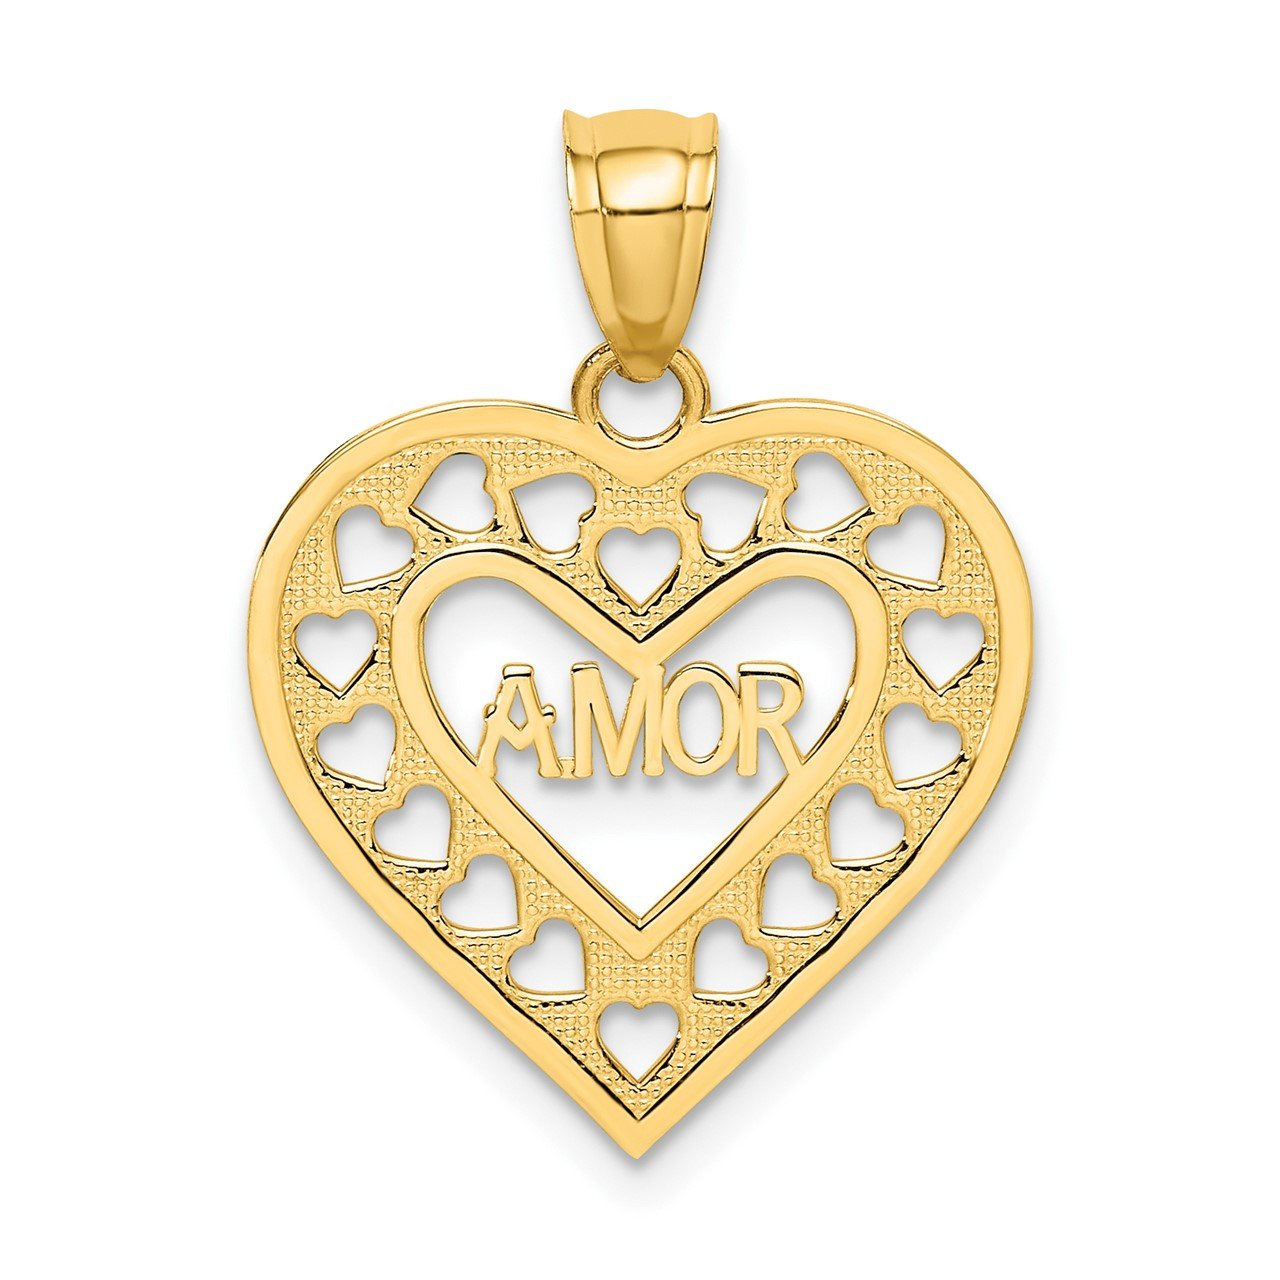 14k AMOR in Cut-out Heart Charm